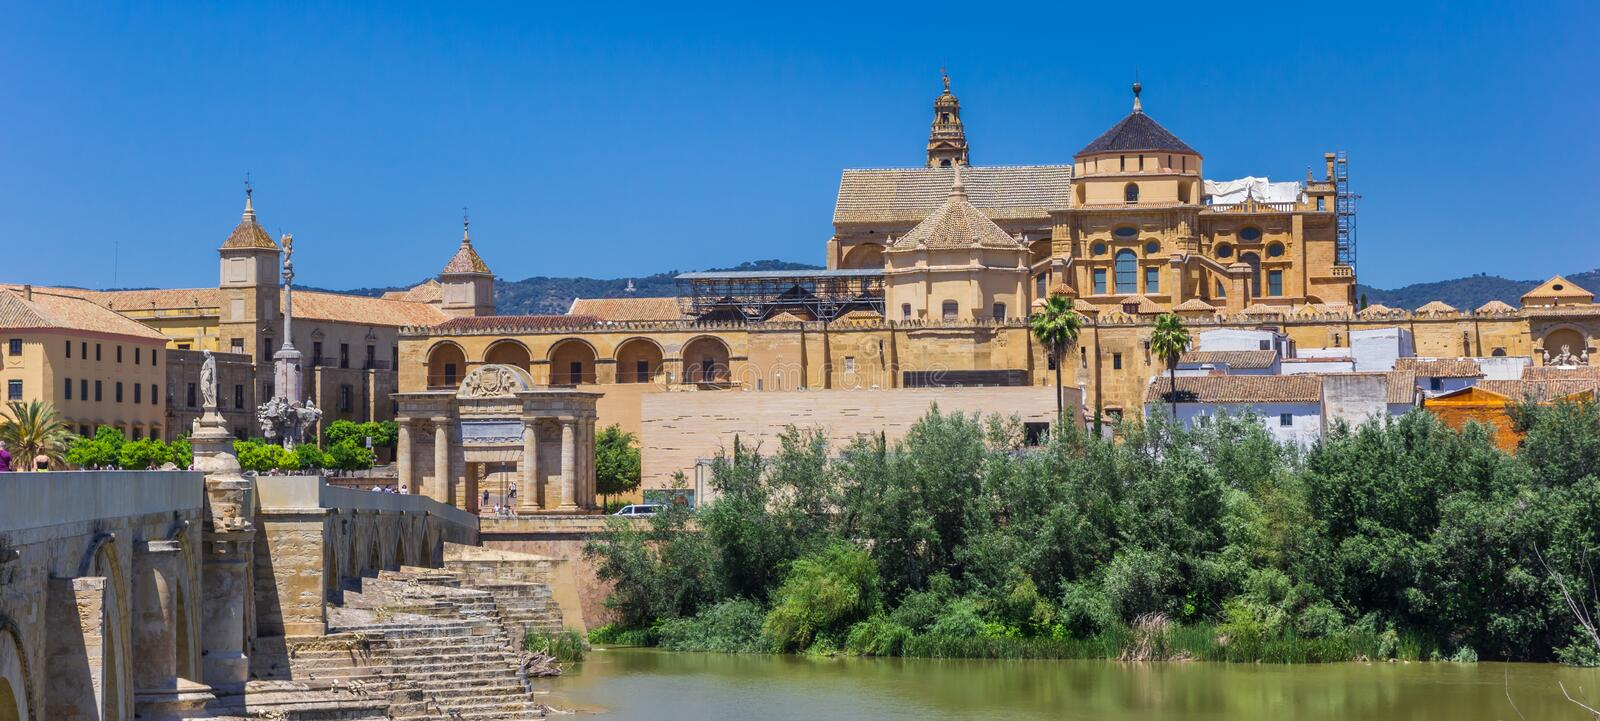 Panorama of the roman bridge and mosque cathedral in Cordoba royalty free stock image